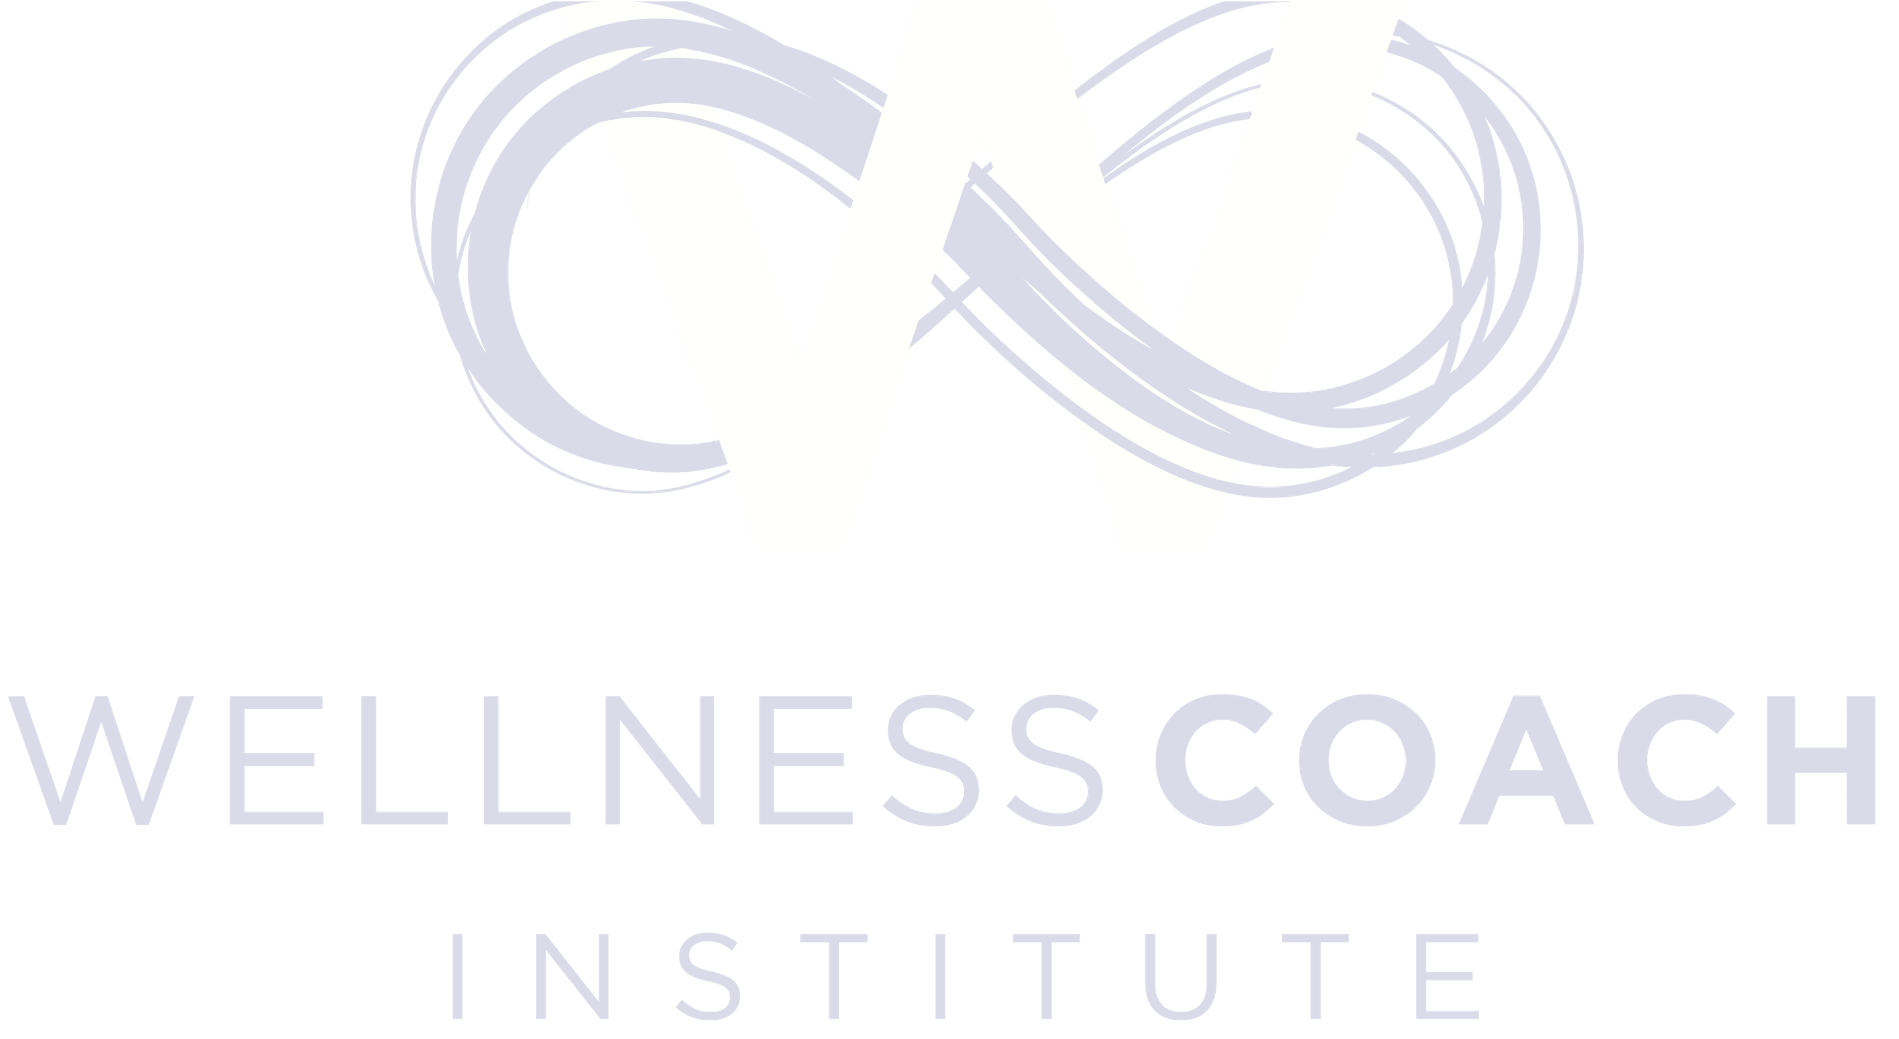 Wellness Coach Institute